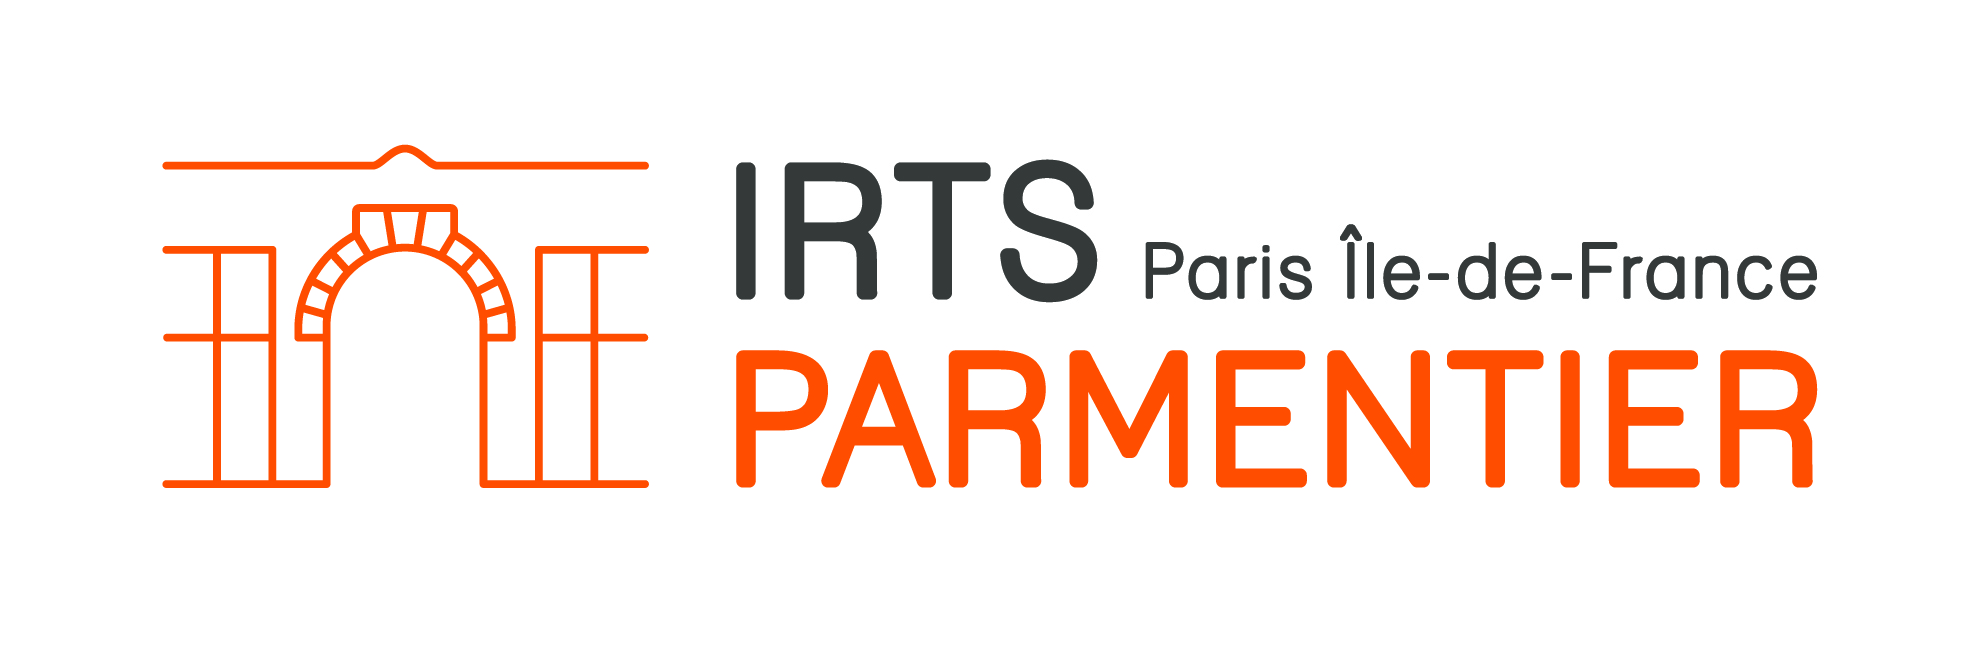 Logo IRTS Paris Ile-de-France 2